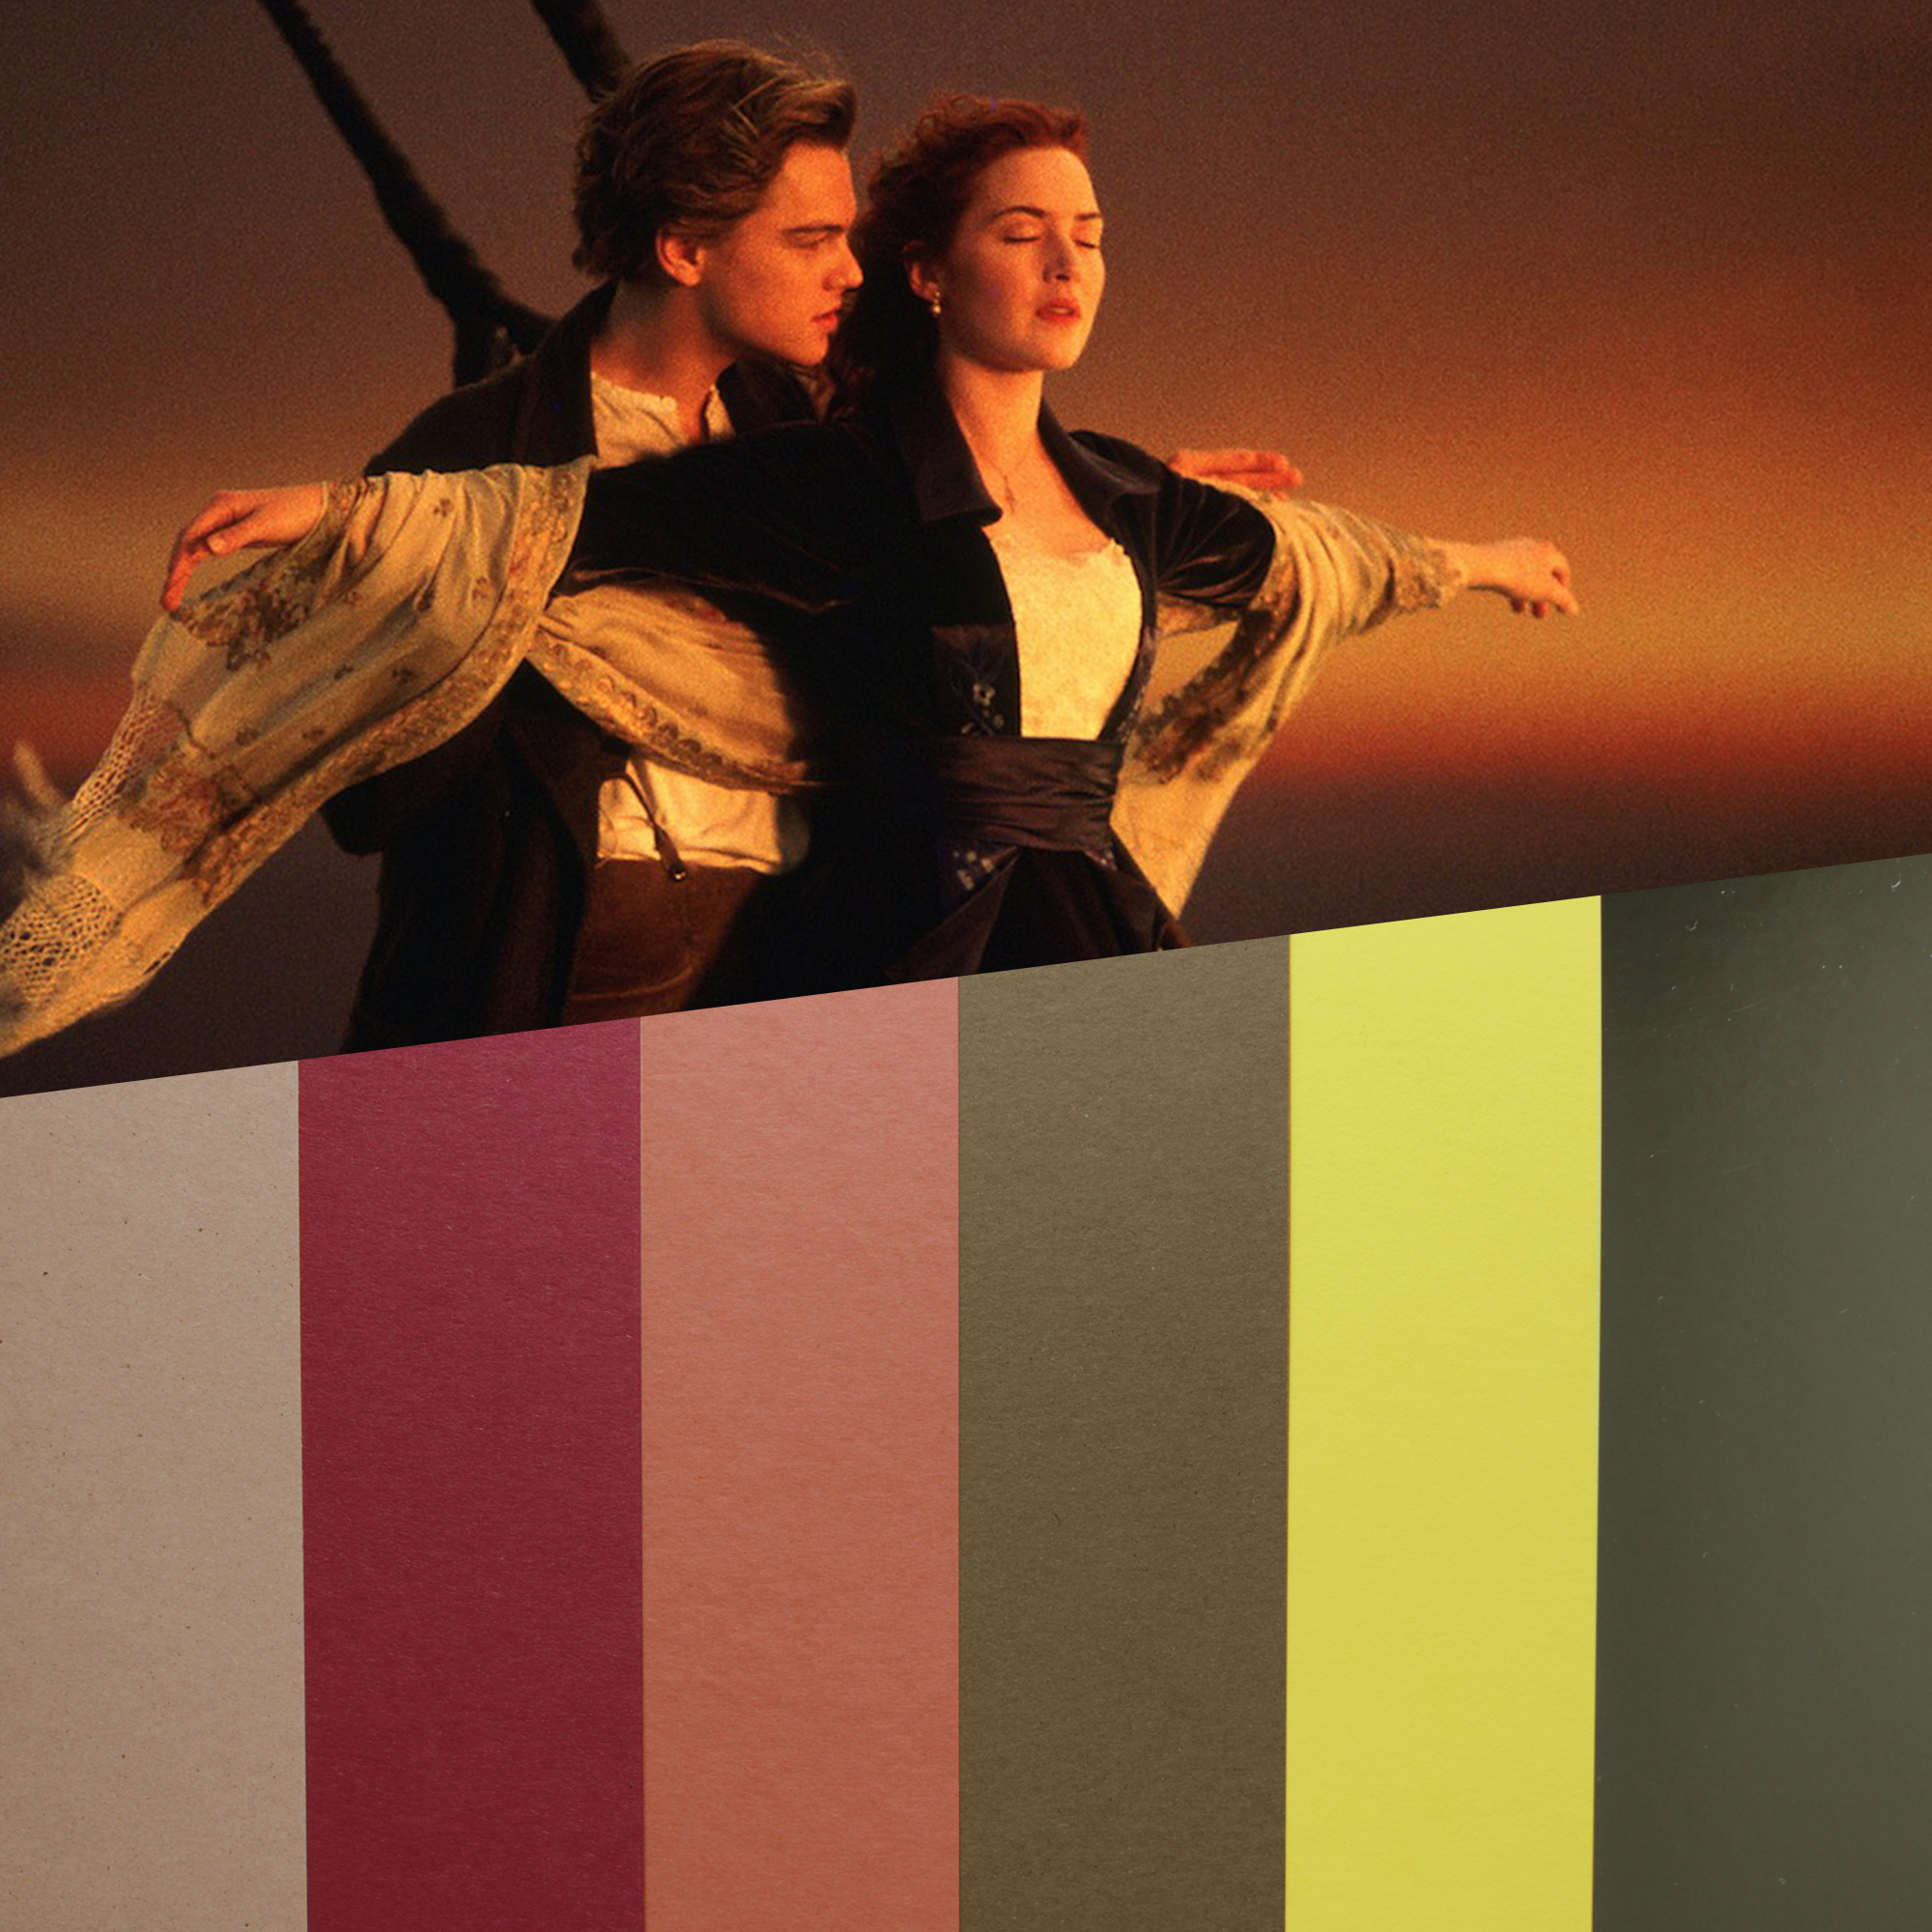 design papers collections inspired by an iconic movie scene - titanic